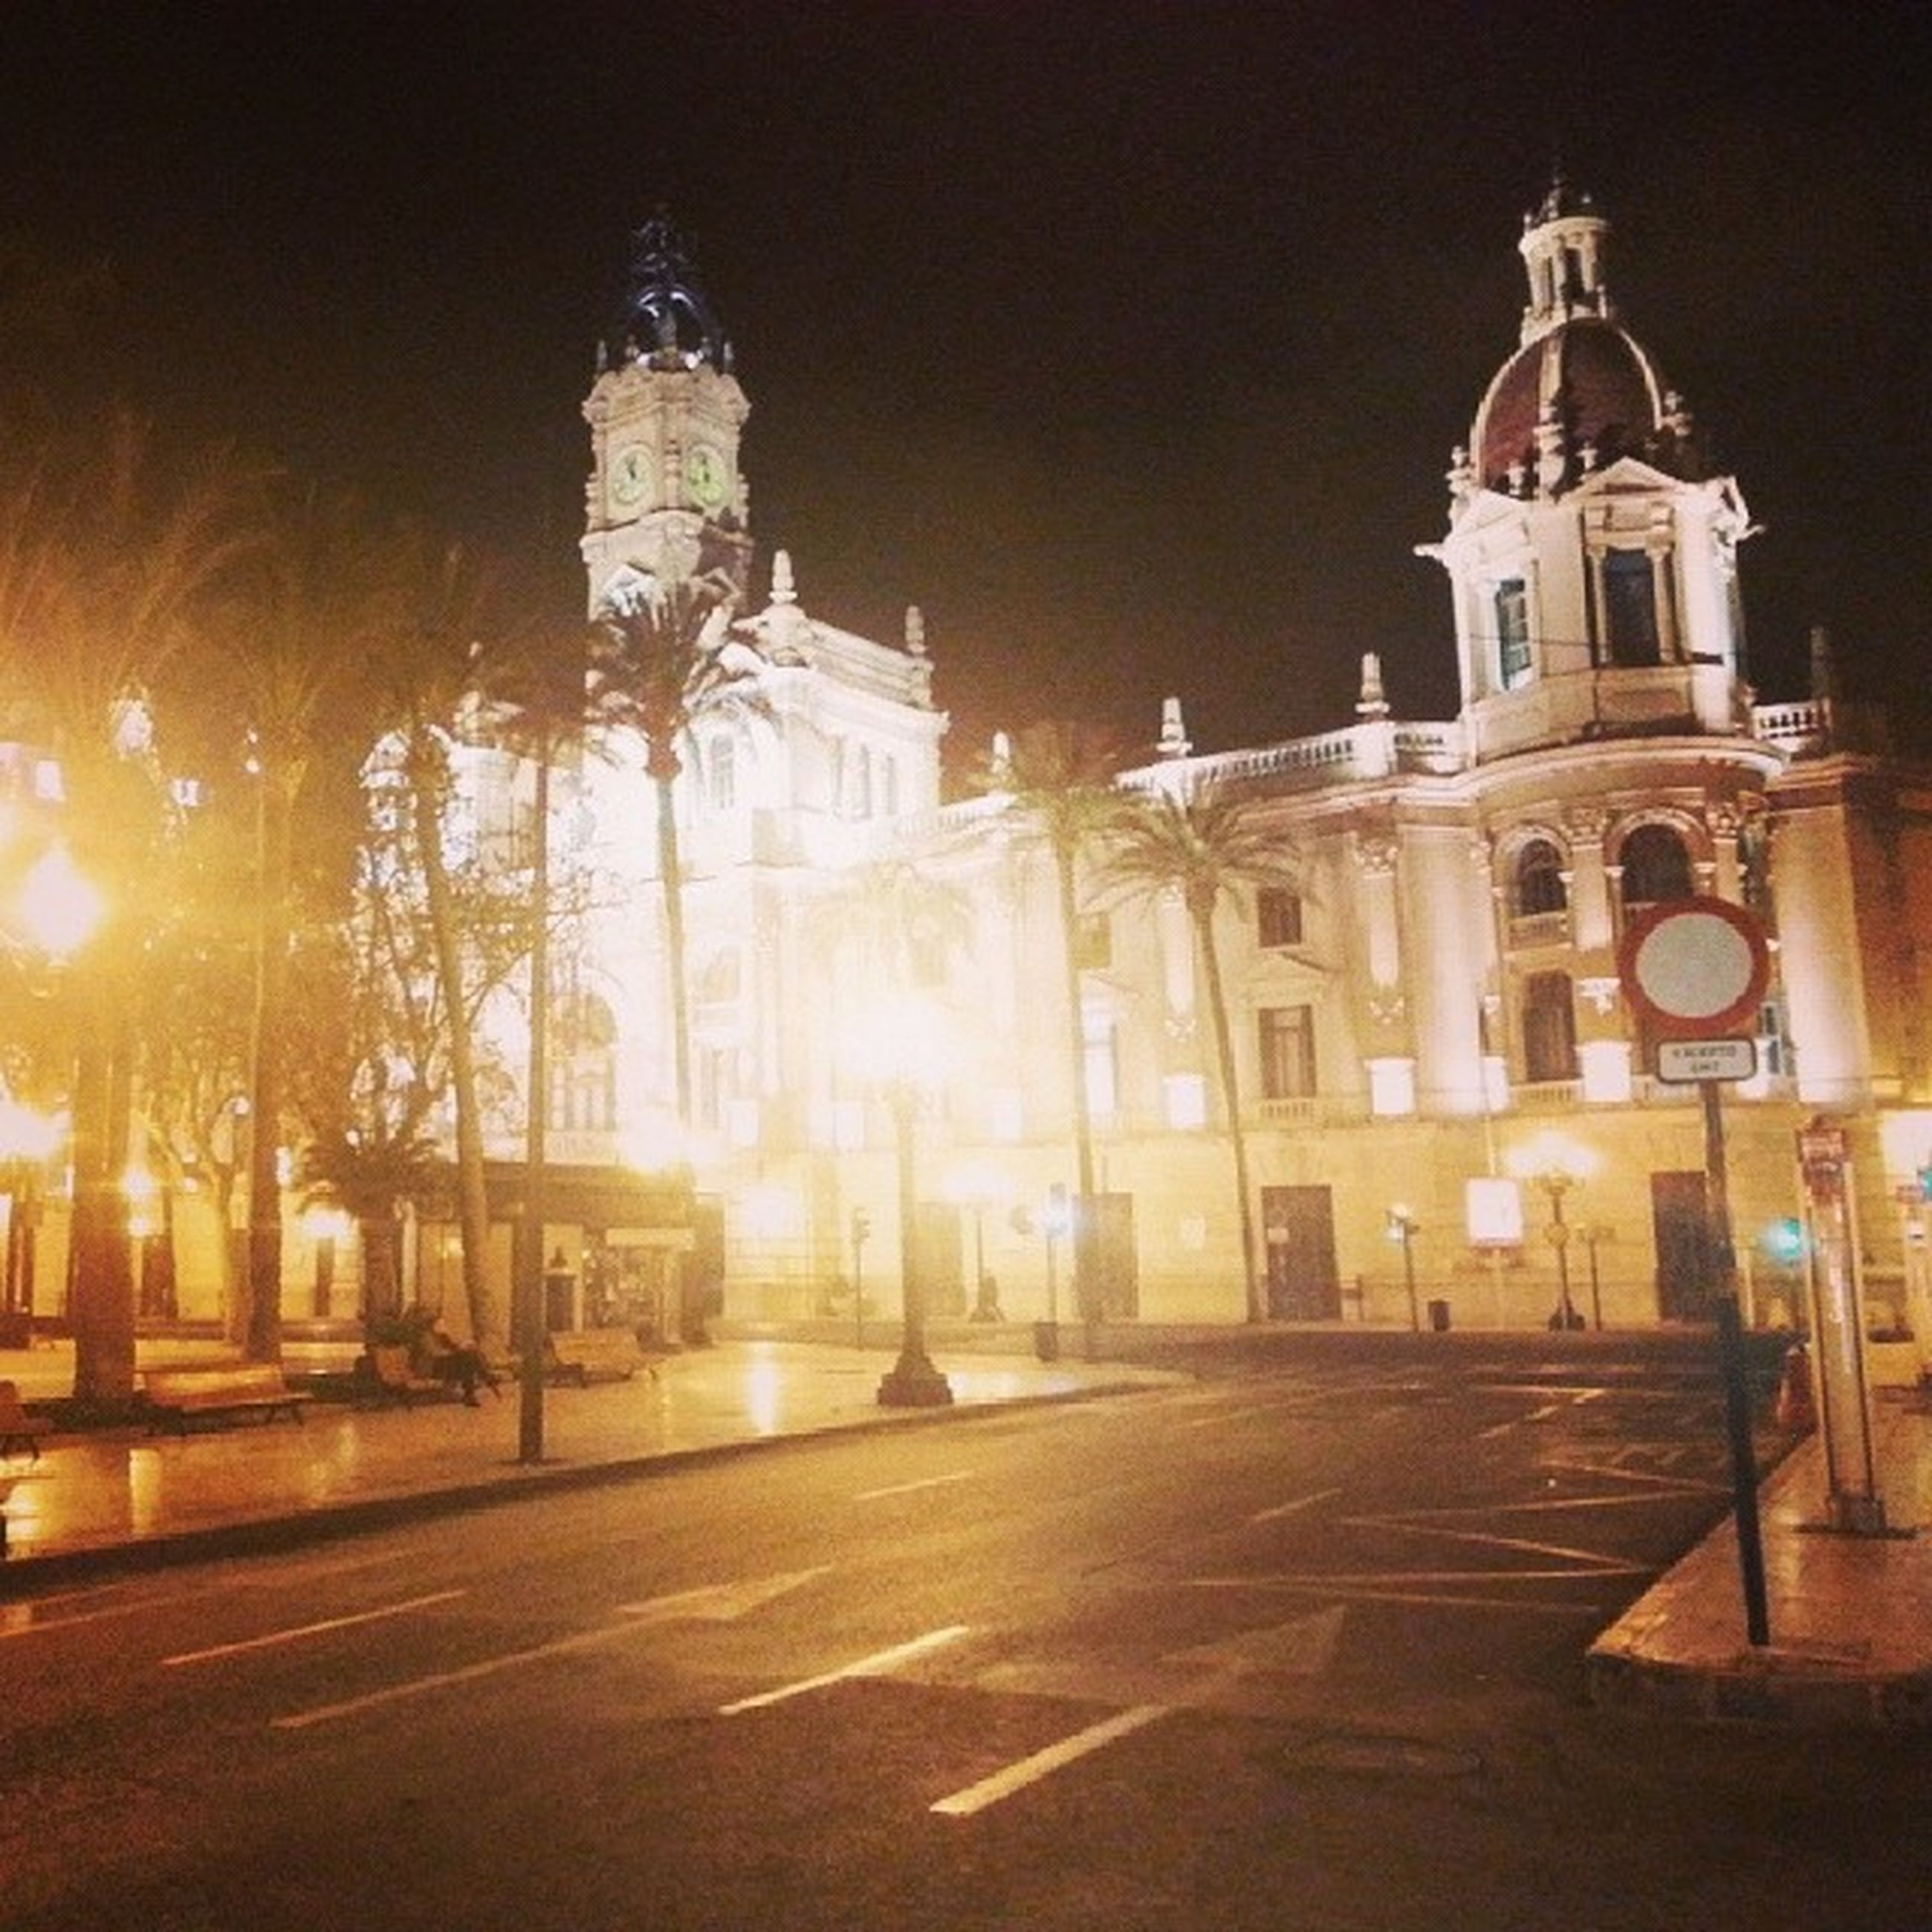 building exterior, night, illuminated, architecture, built structure, religion, place of worship, church, spirituality, street light, cathedral, street, lighting equipment, sky, city, outdoors, road, cross